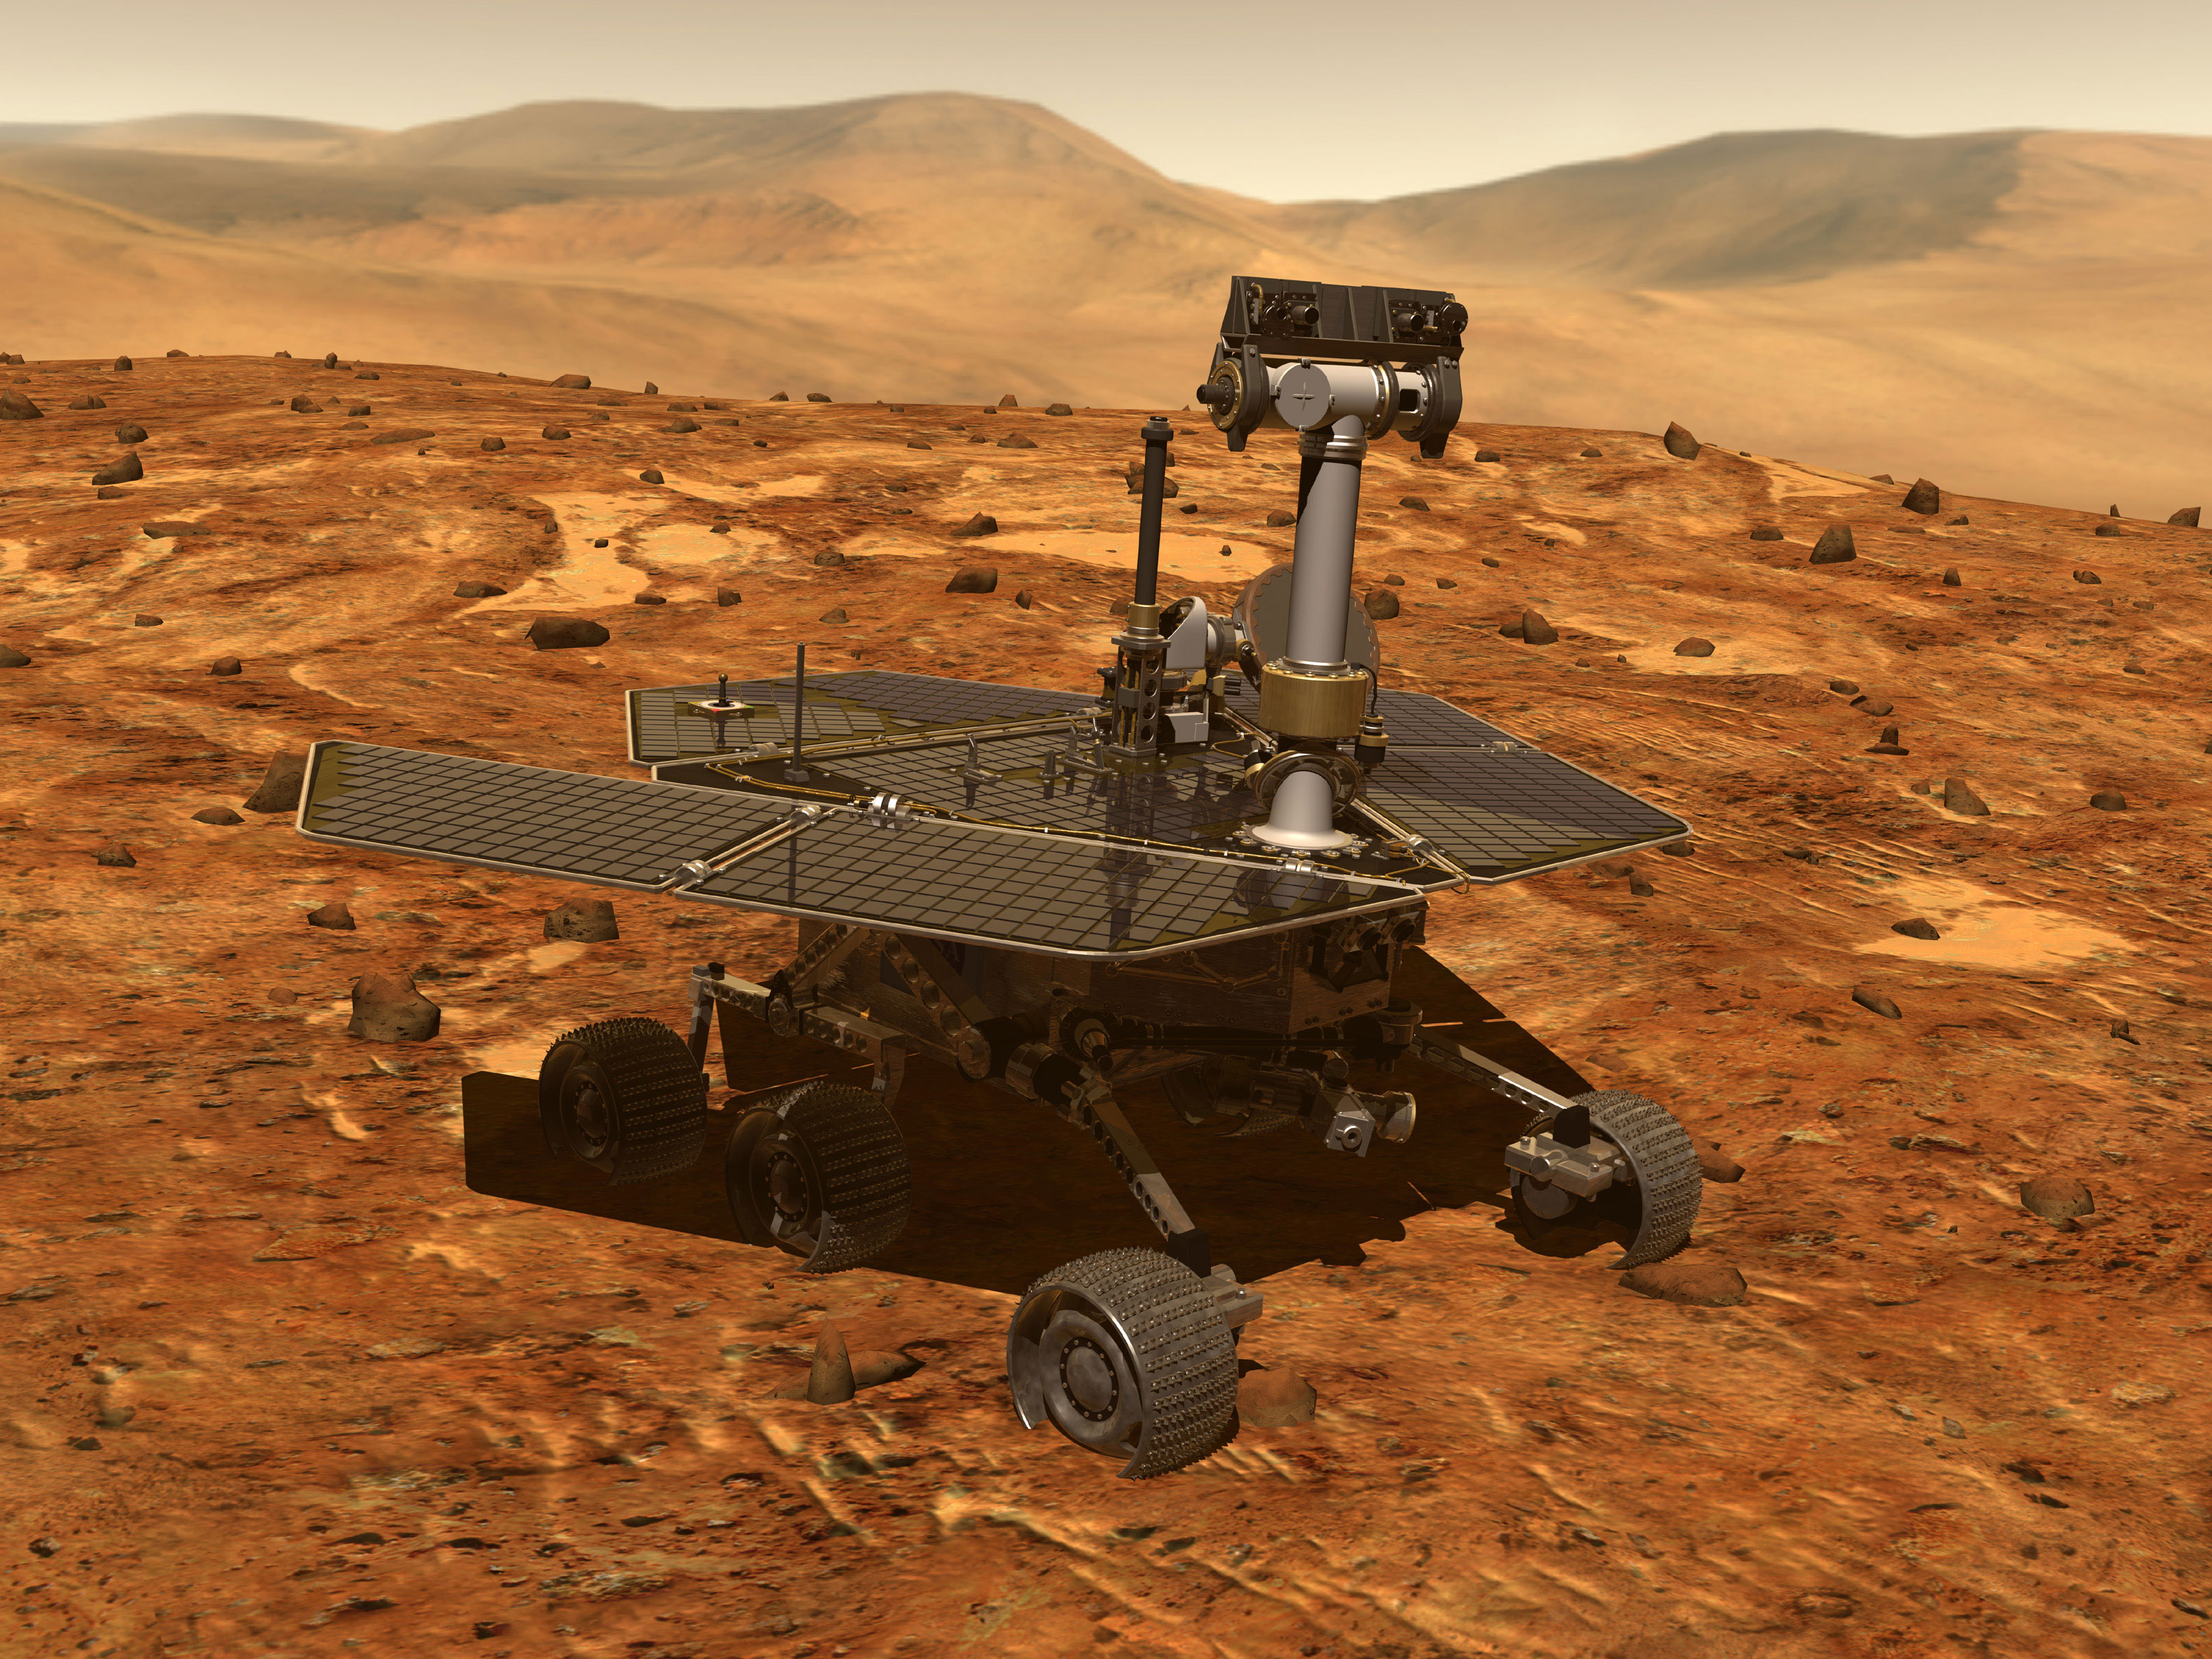 mars rover pictures - HD1334×1000